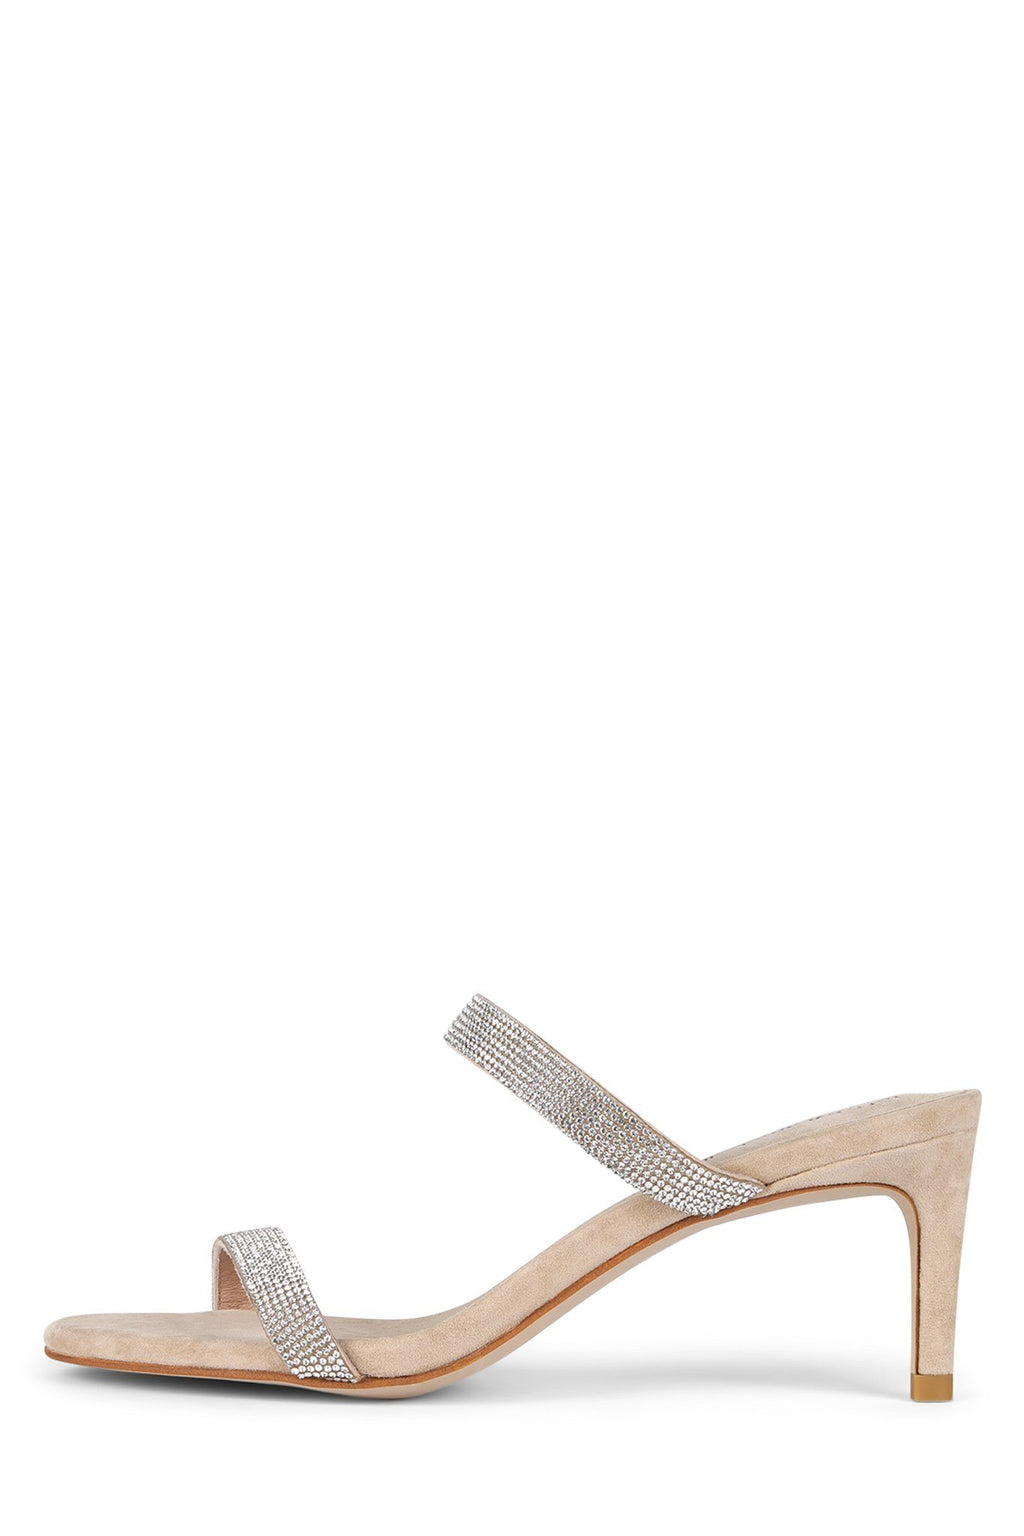 ROYAL Heeled Sandal Jeffrey Campbell Nude Suede Champagne 6